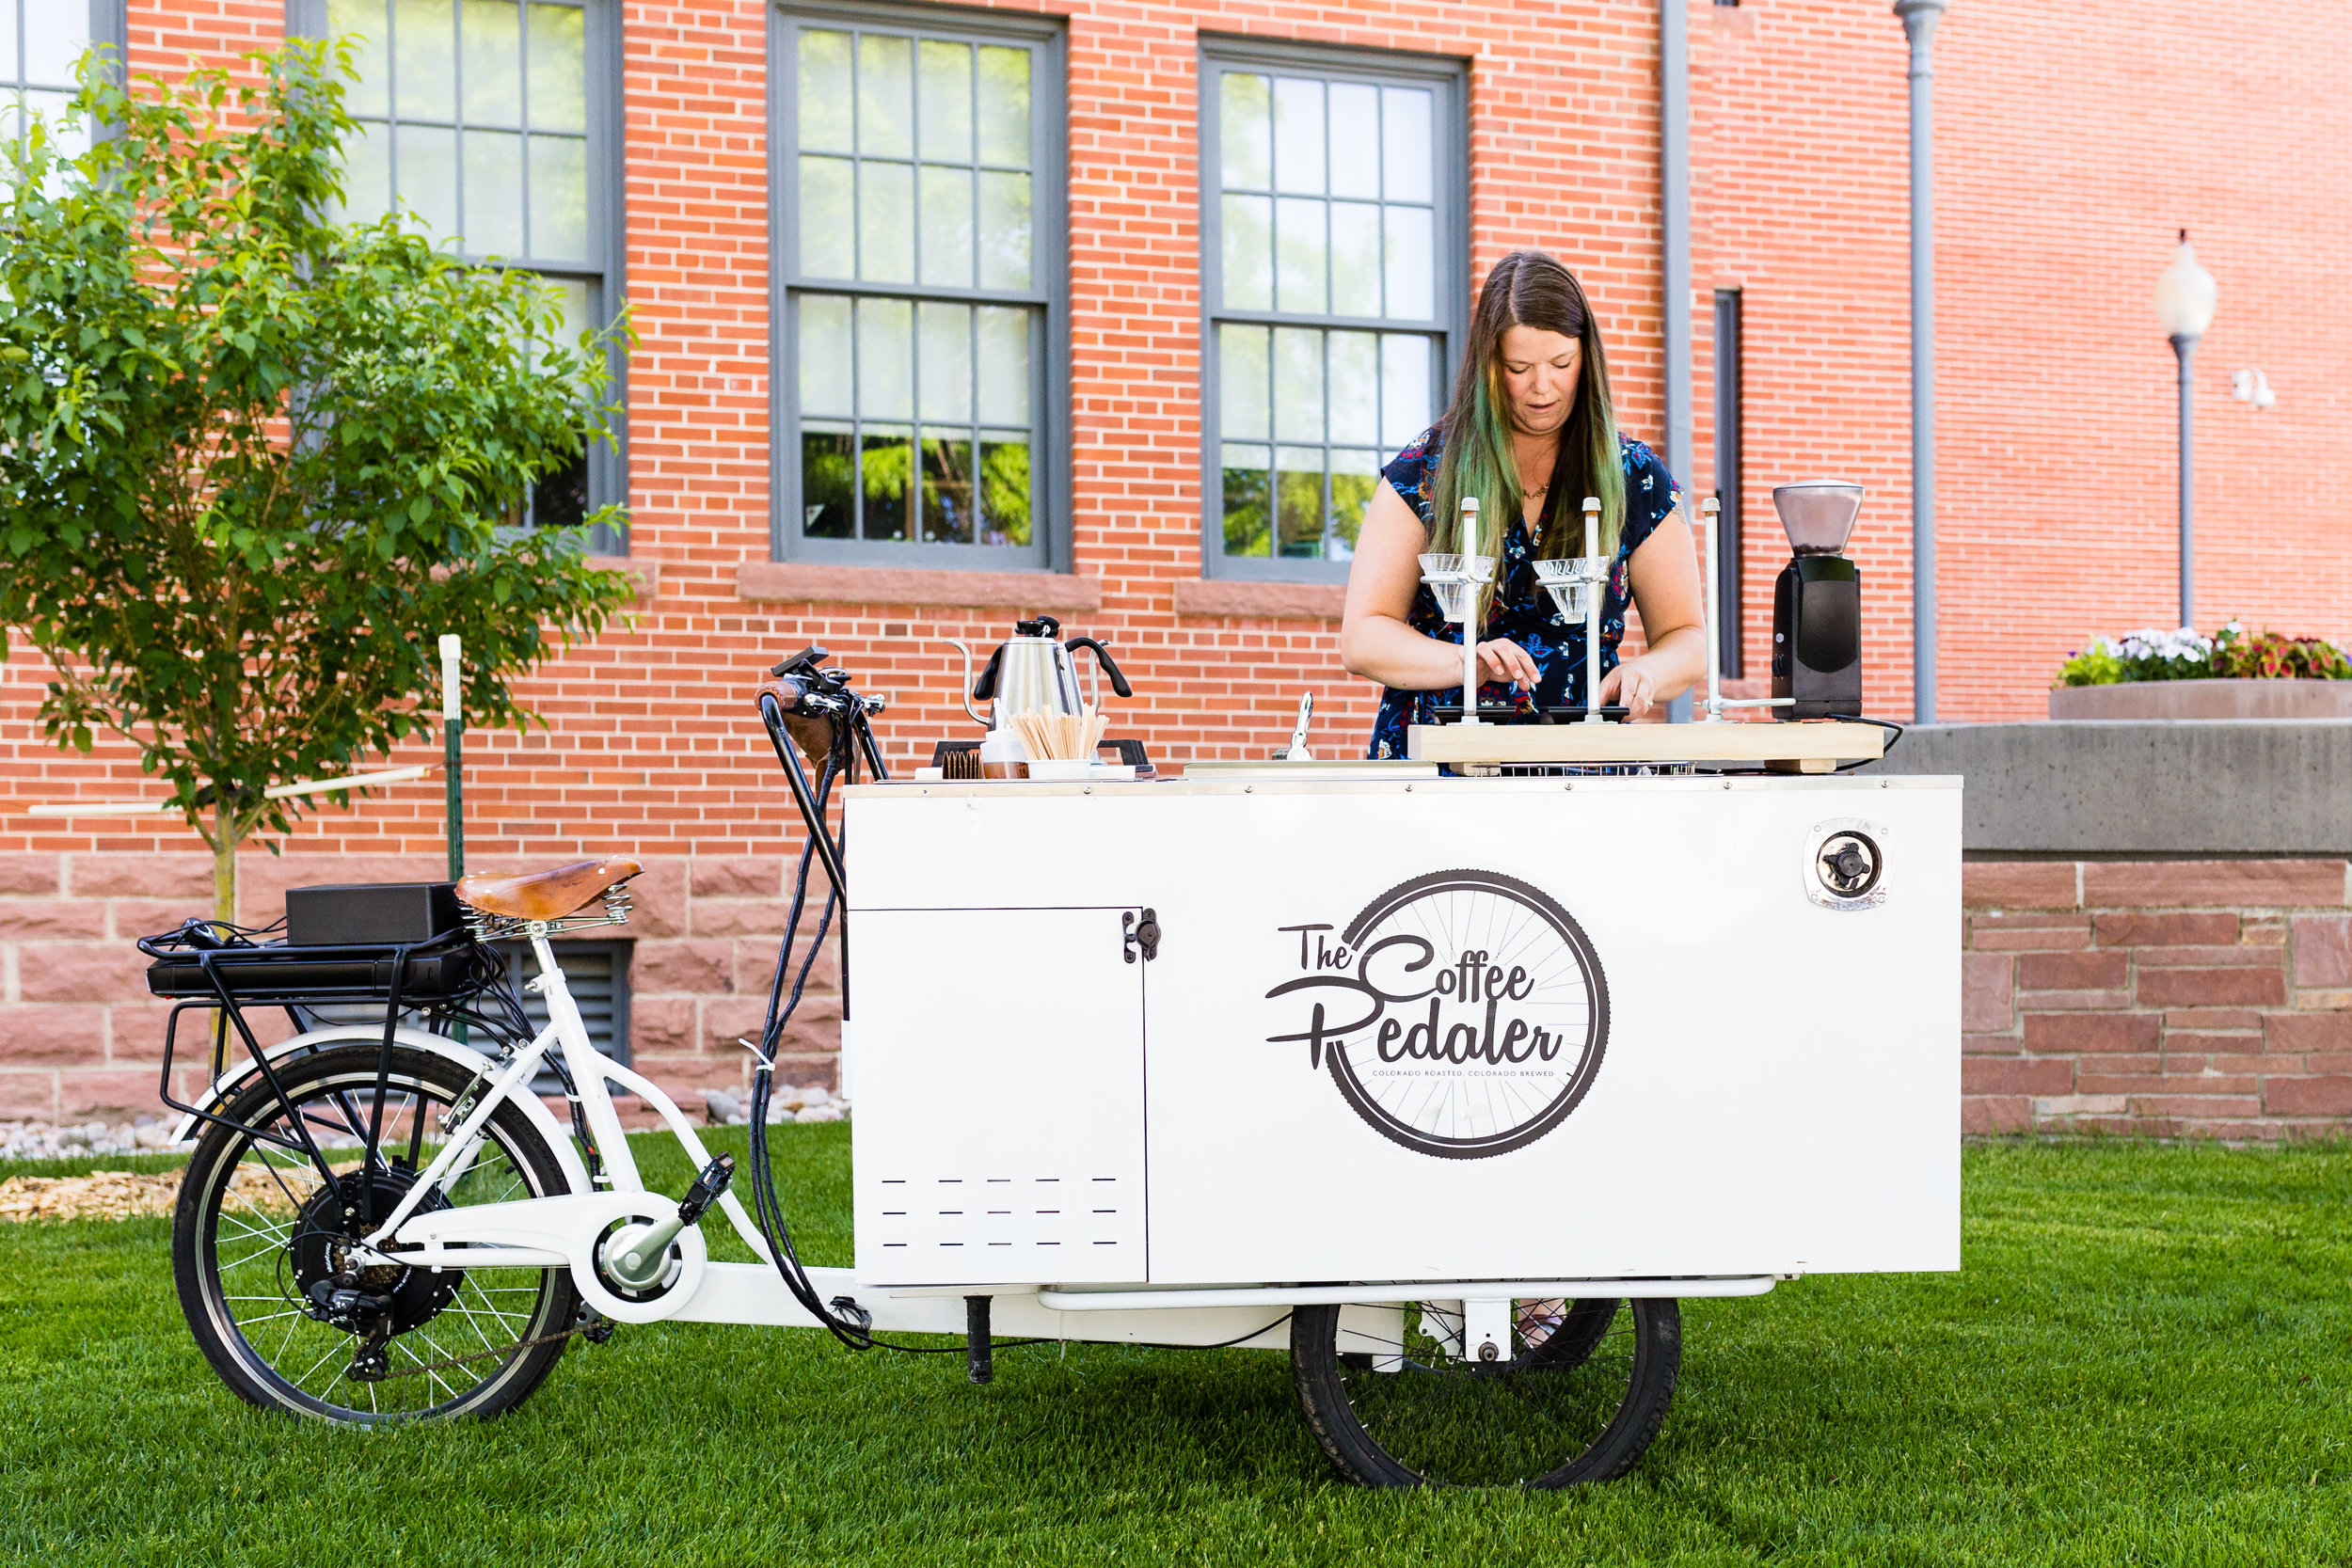 The Coffee Pedaler (1 of 15).jpg